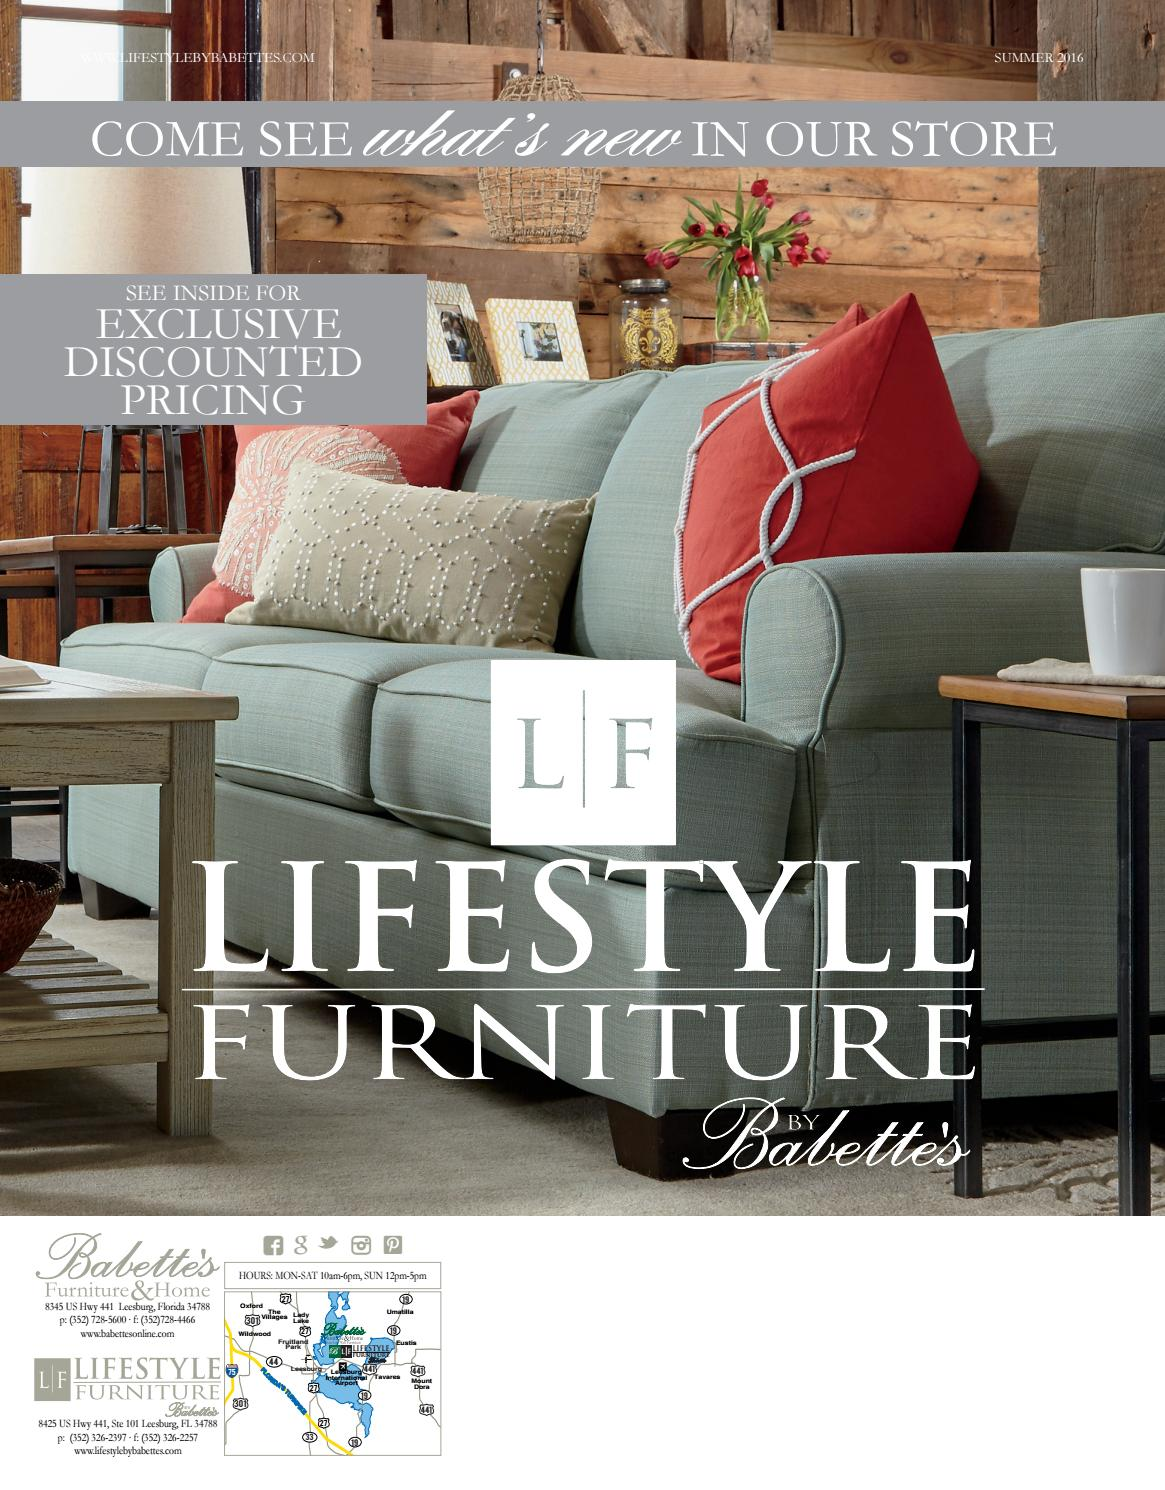 Lifestyle Furniture By Babette 39 S Catalog Summer 2016 By Babette 39 S Furniture Home Issuu